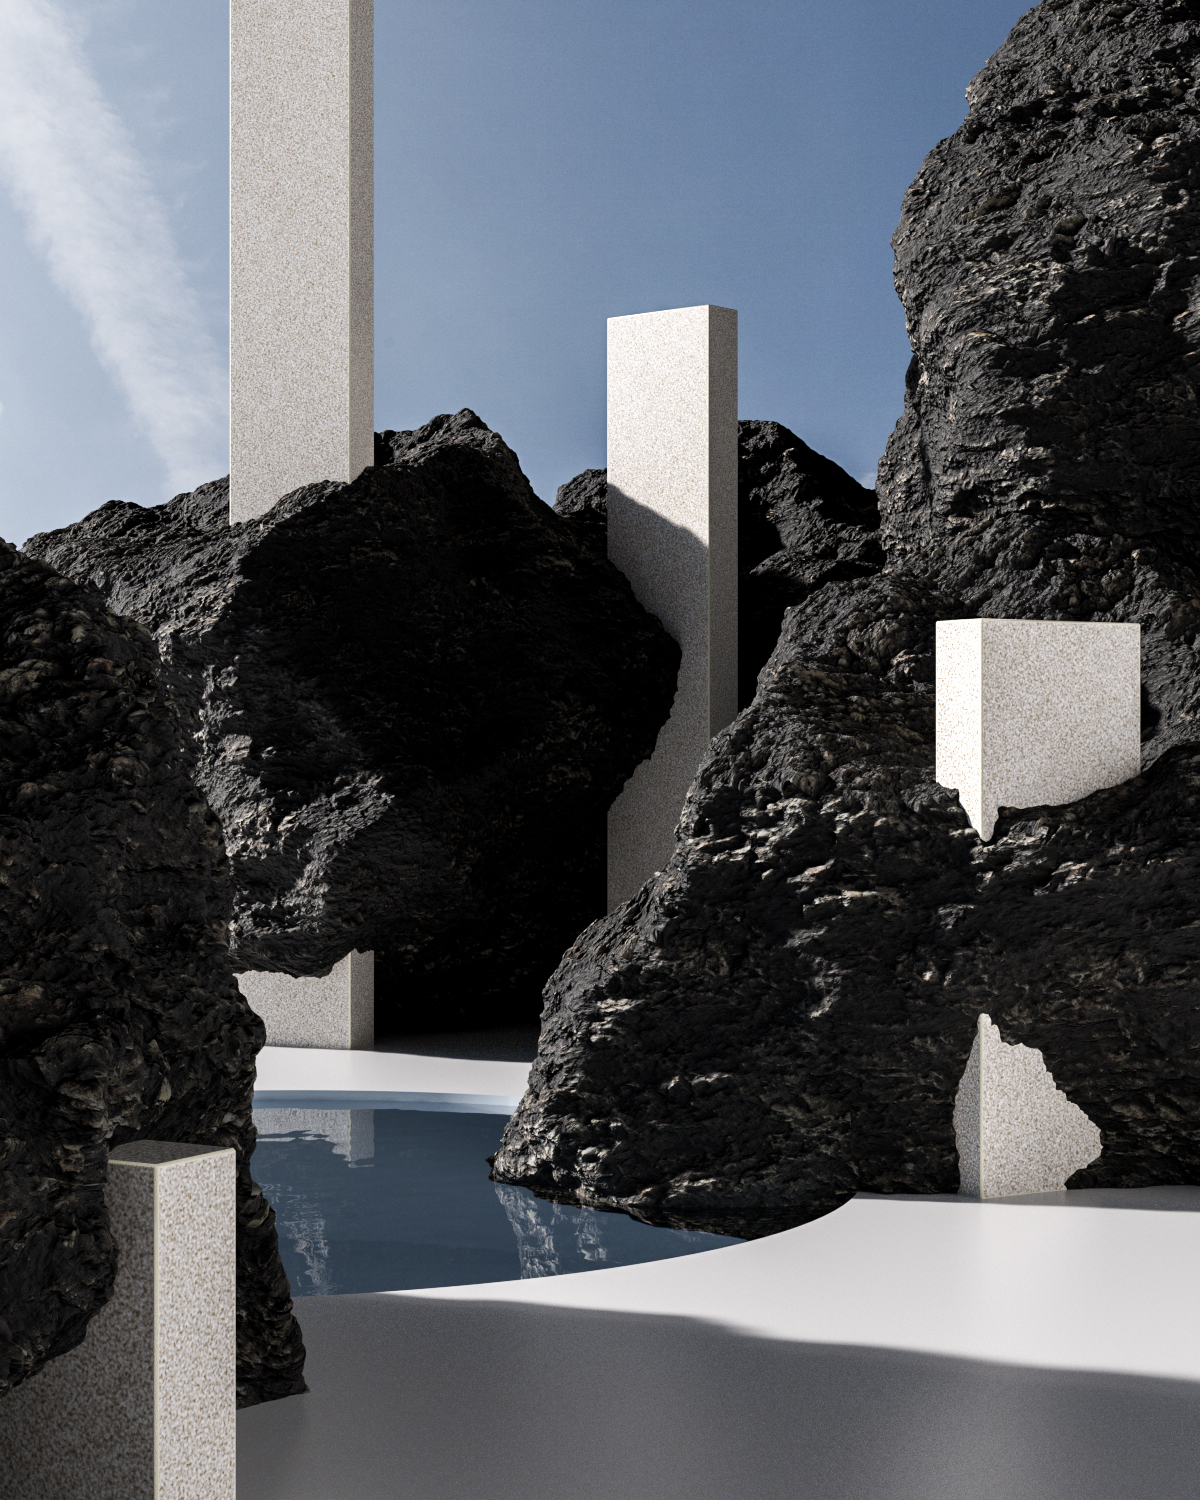 a rendered image with volcanic rock going around white pillars done by alexis christodoulou